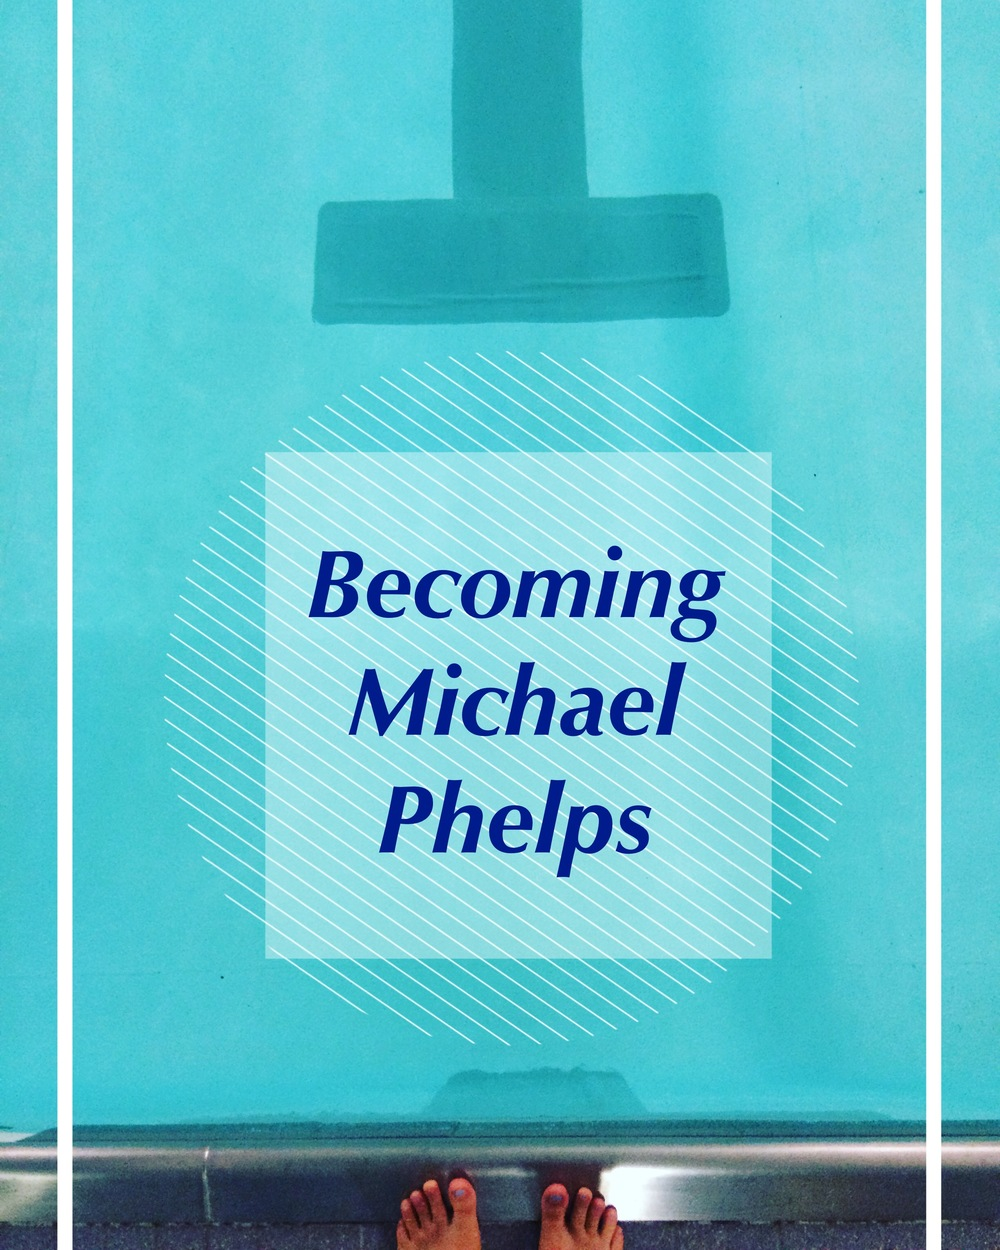 Becoming Michael Phelps